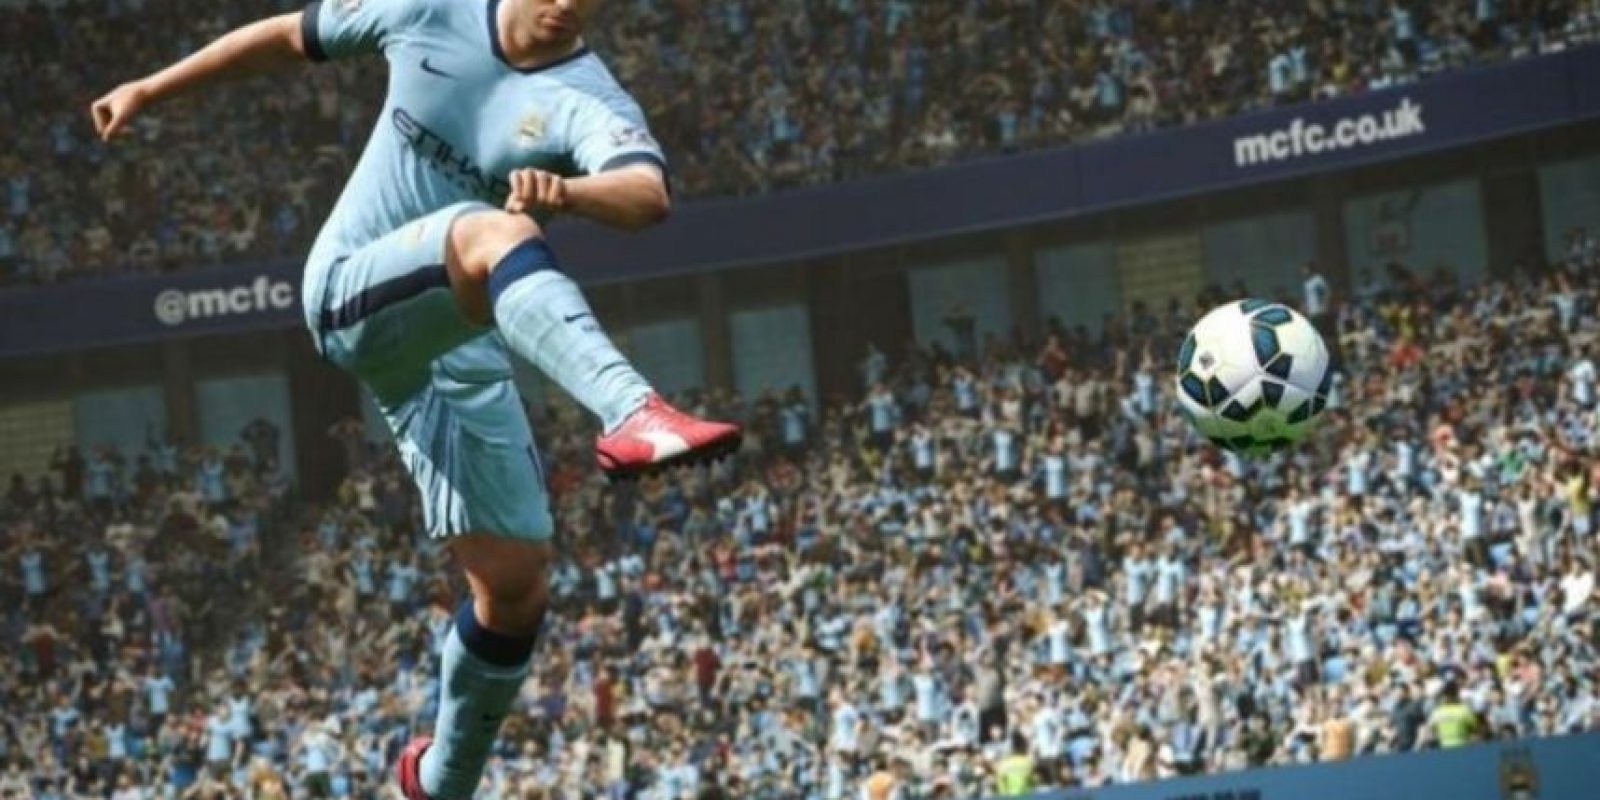 10) Definición con mayor técnica. Foto: EA Sports